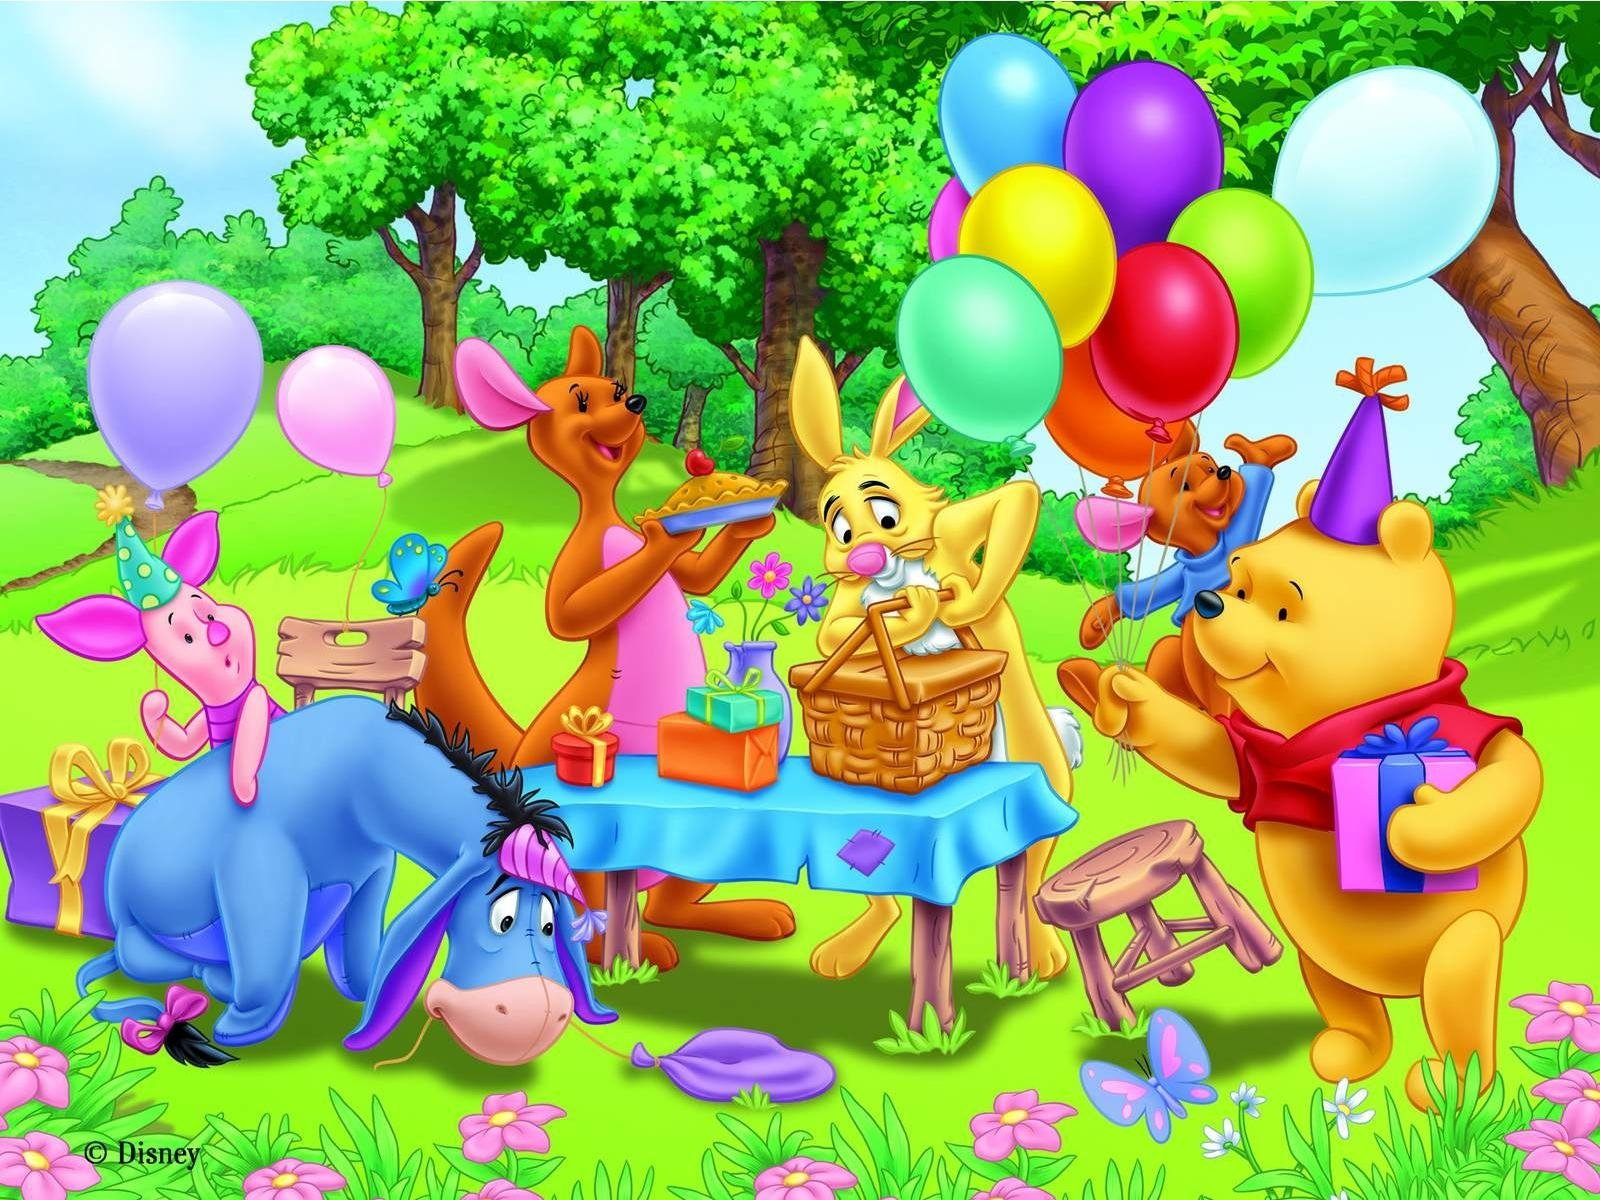 83 winnie the pooh hd wallpapers background images wallpaper abyss winnie the pooh hd wallpaper background image id453899 voltagebd Gallery